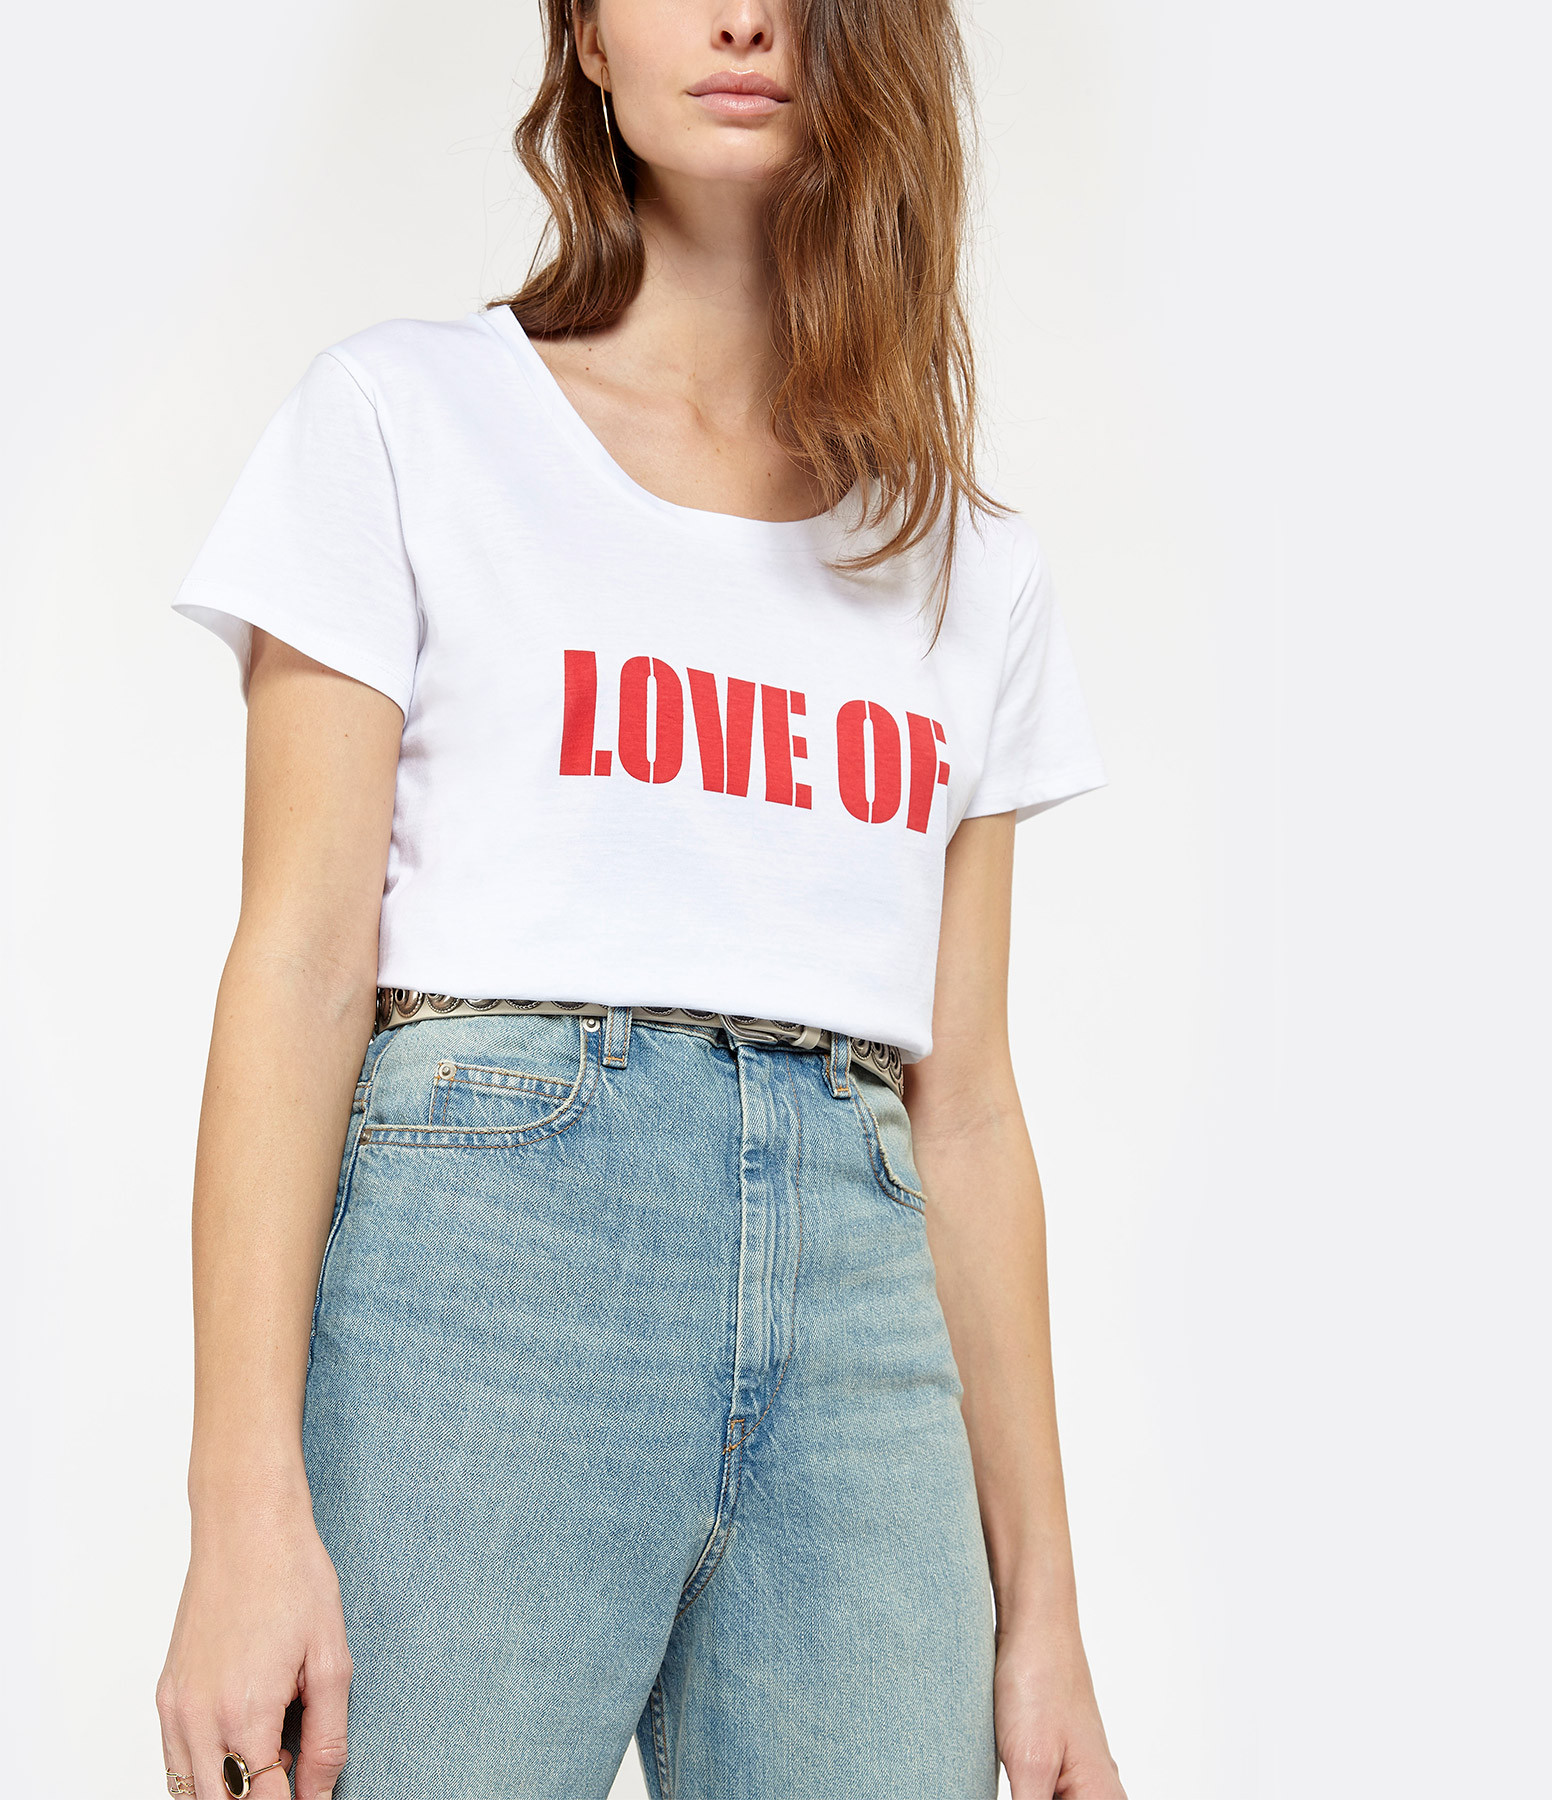 JEANNE VOULAND - Tee-Shirt Done Love Of Blanc